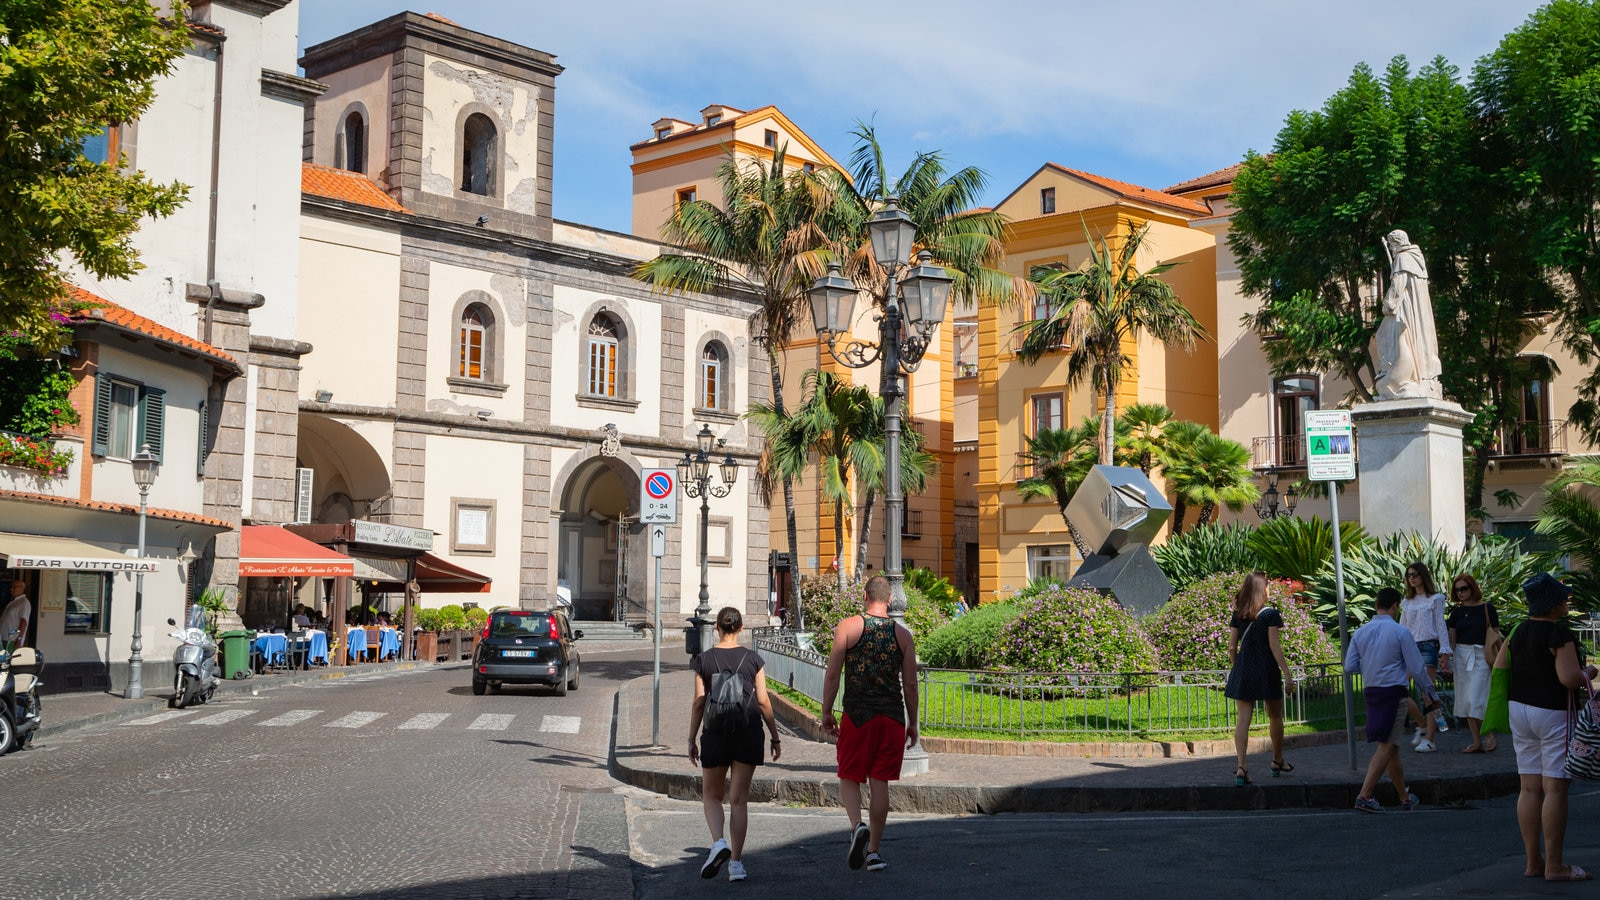 Piazza Sant\'Antonino which includes street scenes as well as a couple